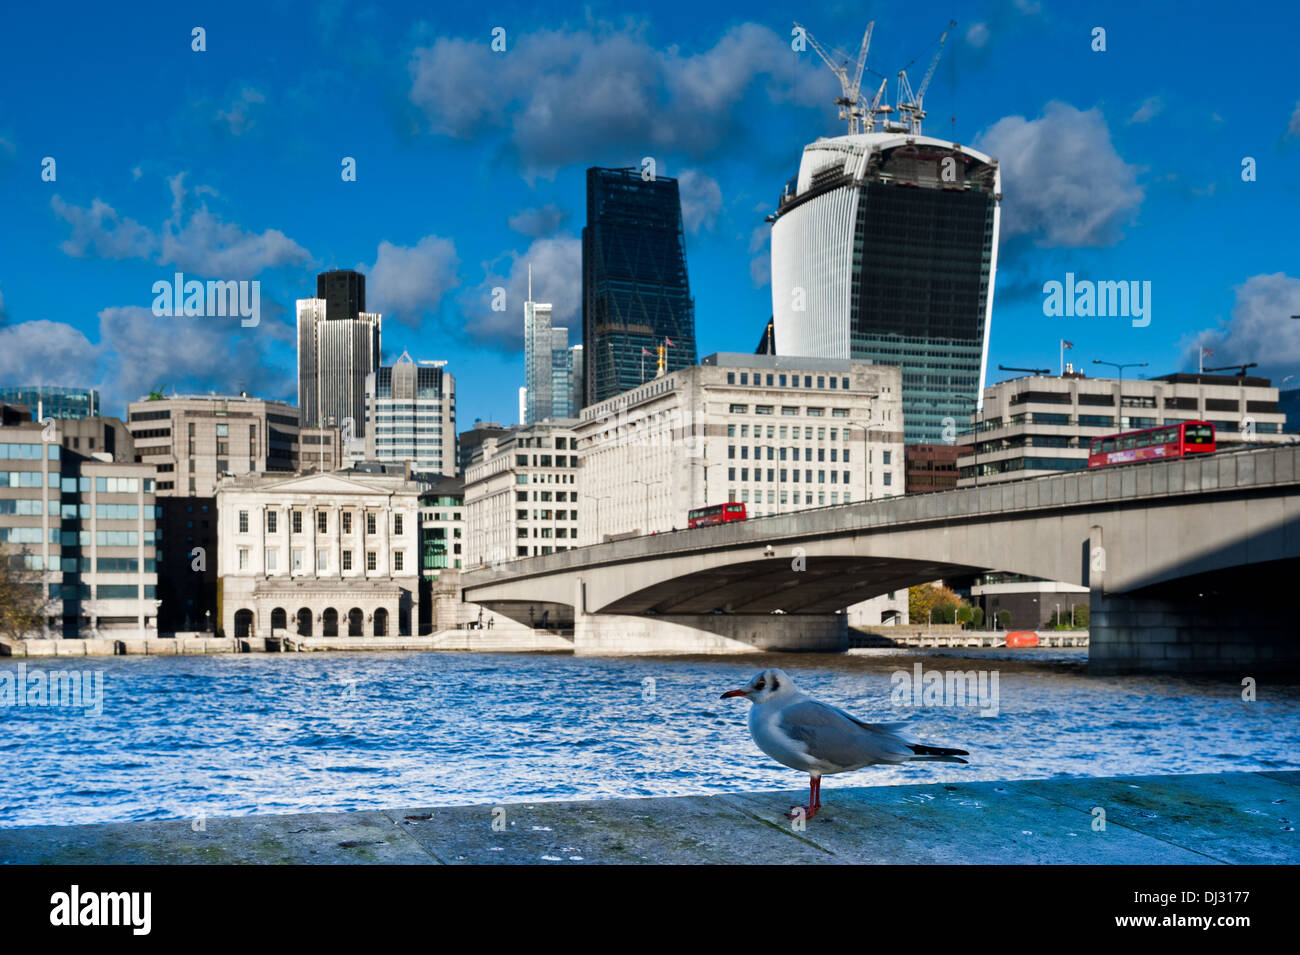 A seagull sits on the river bank of the Thames, facing the new London Skyline 2013 with skyscrapers of The City - Stock Image